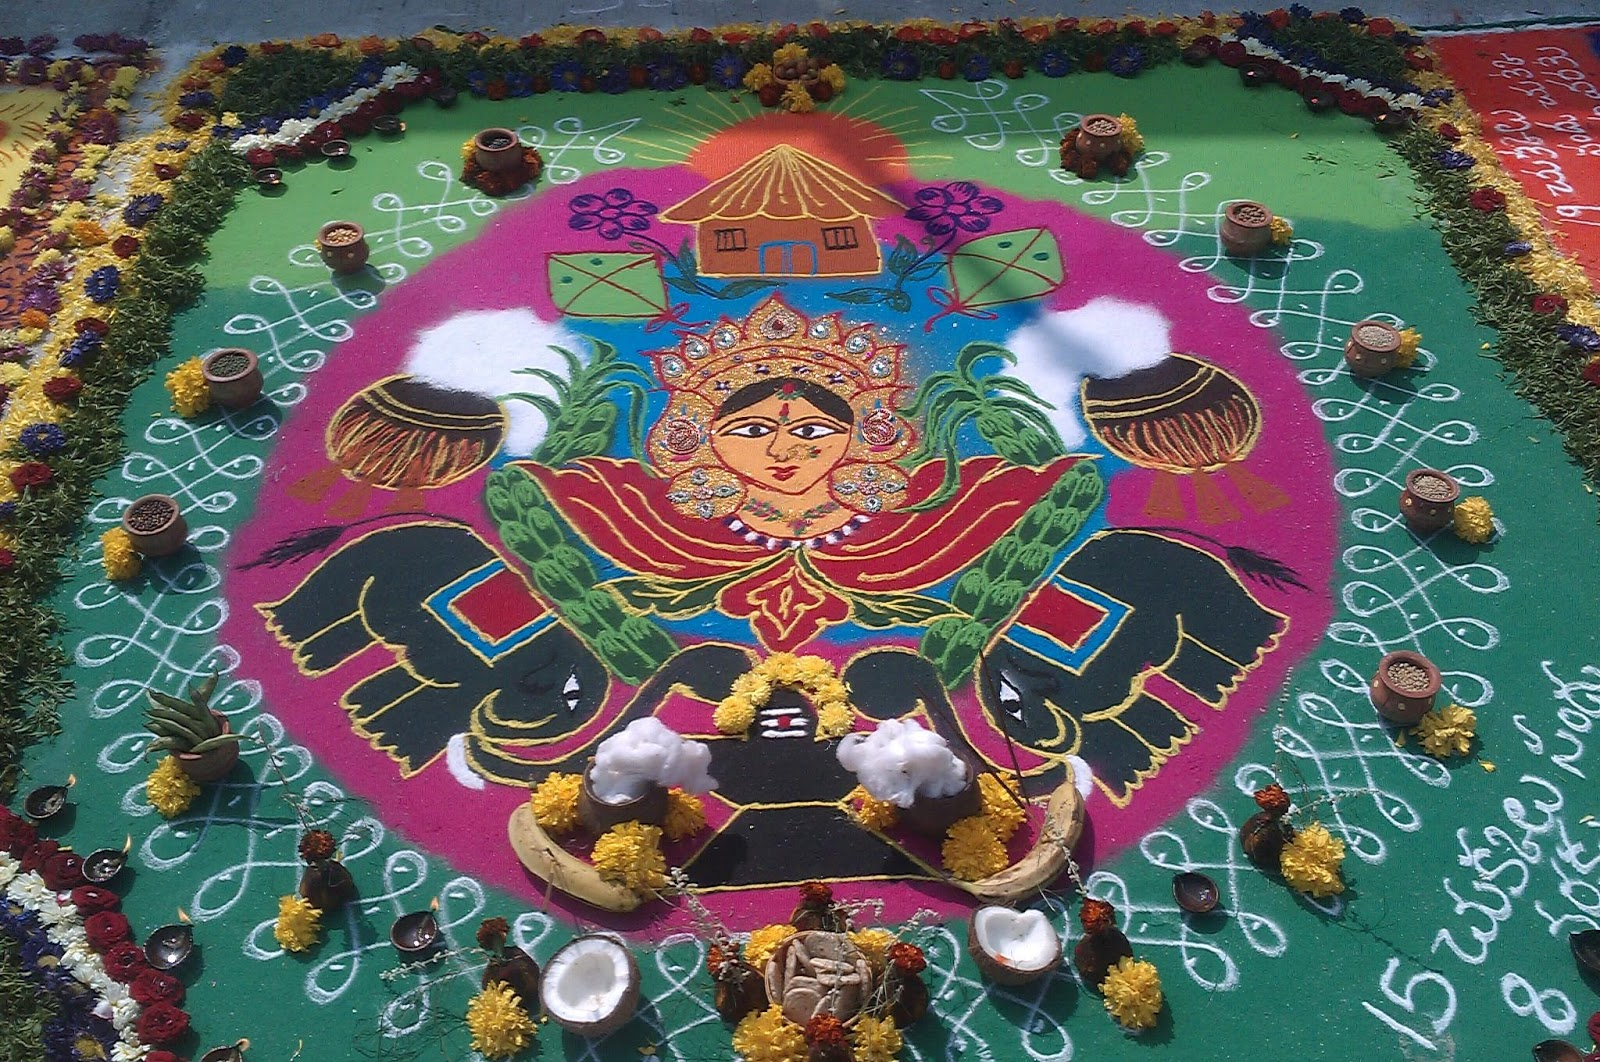 Andhrajyothi rangoli competition images 3rd Prize : Rs 13,000/-